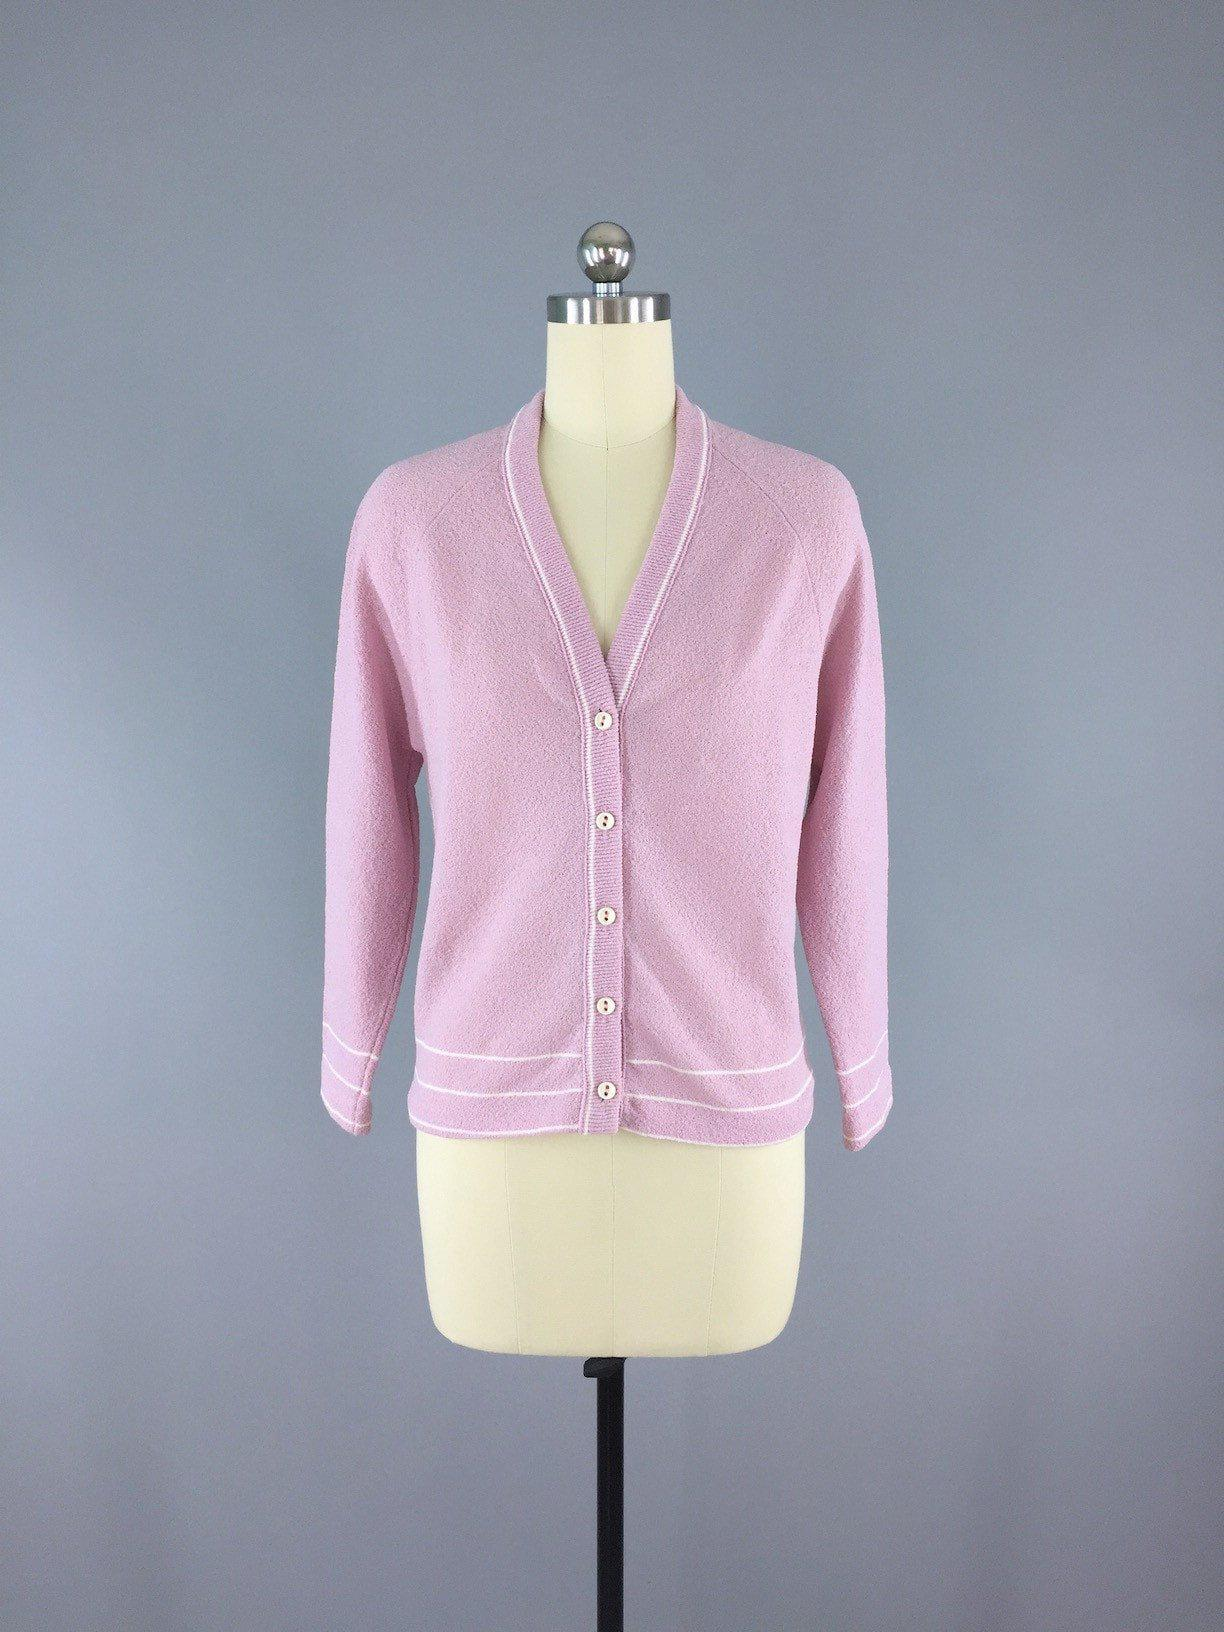 Vintage 1970s Lavender Pink Cardigan Sweater Tops ThisBlueBird - Sale